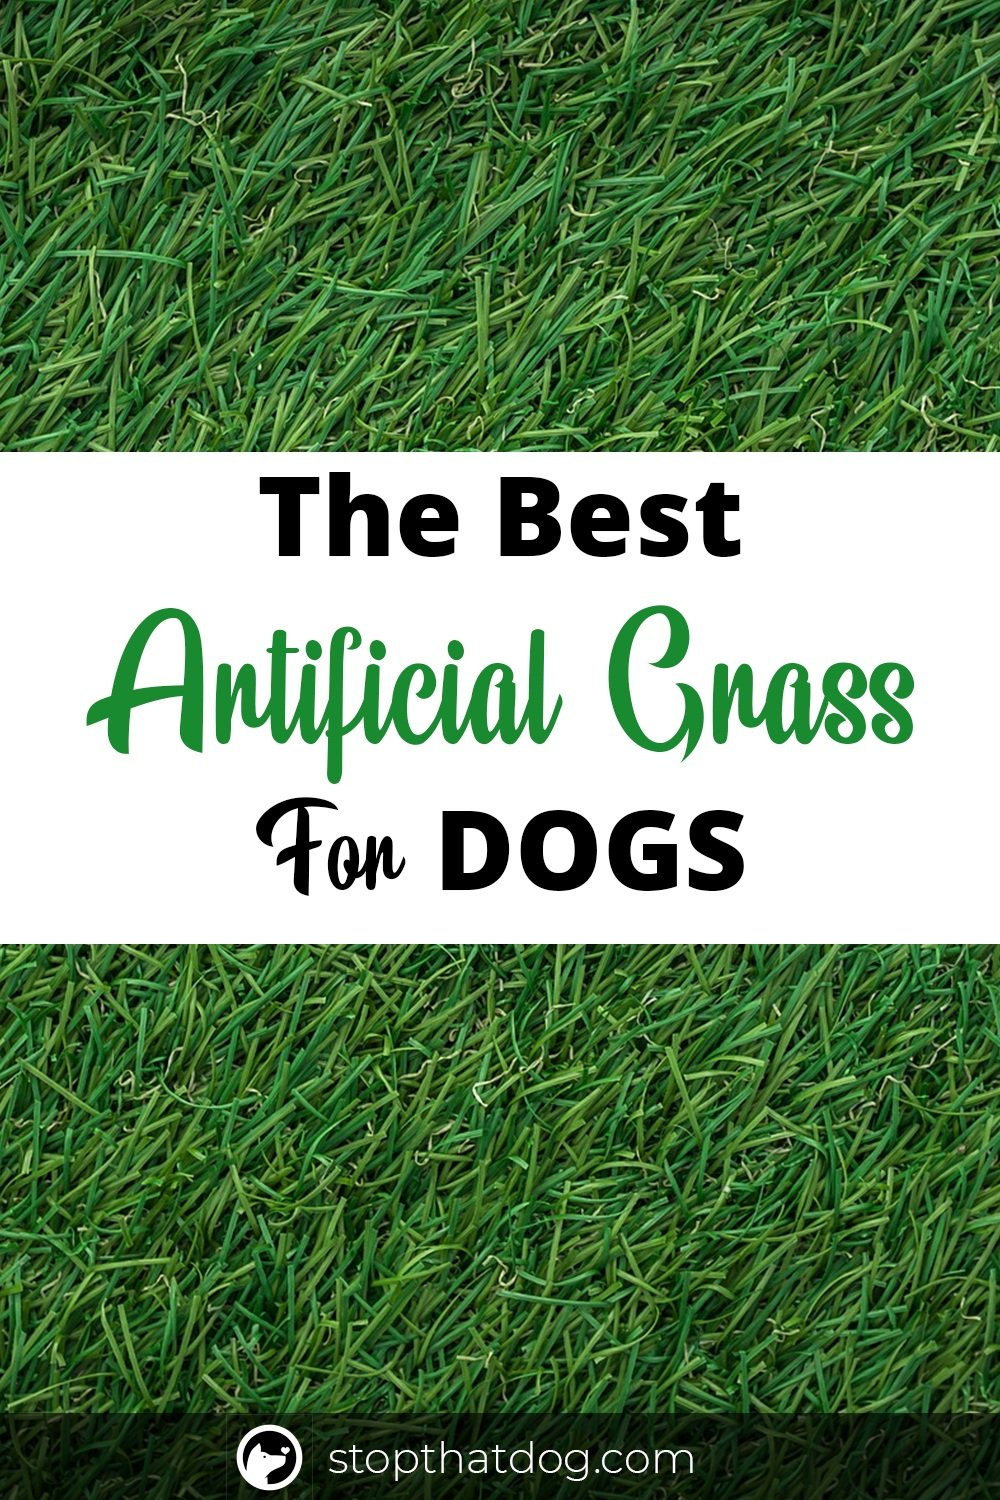 Want some artificial grass for your dog? If so, this guide highlights many of the best options that work great for dogs!